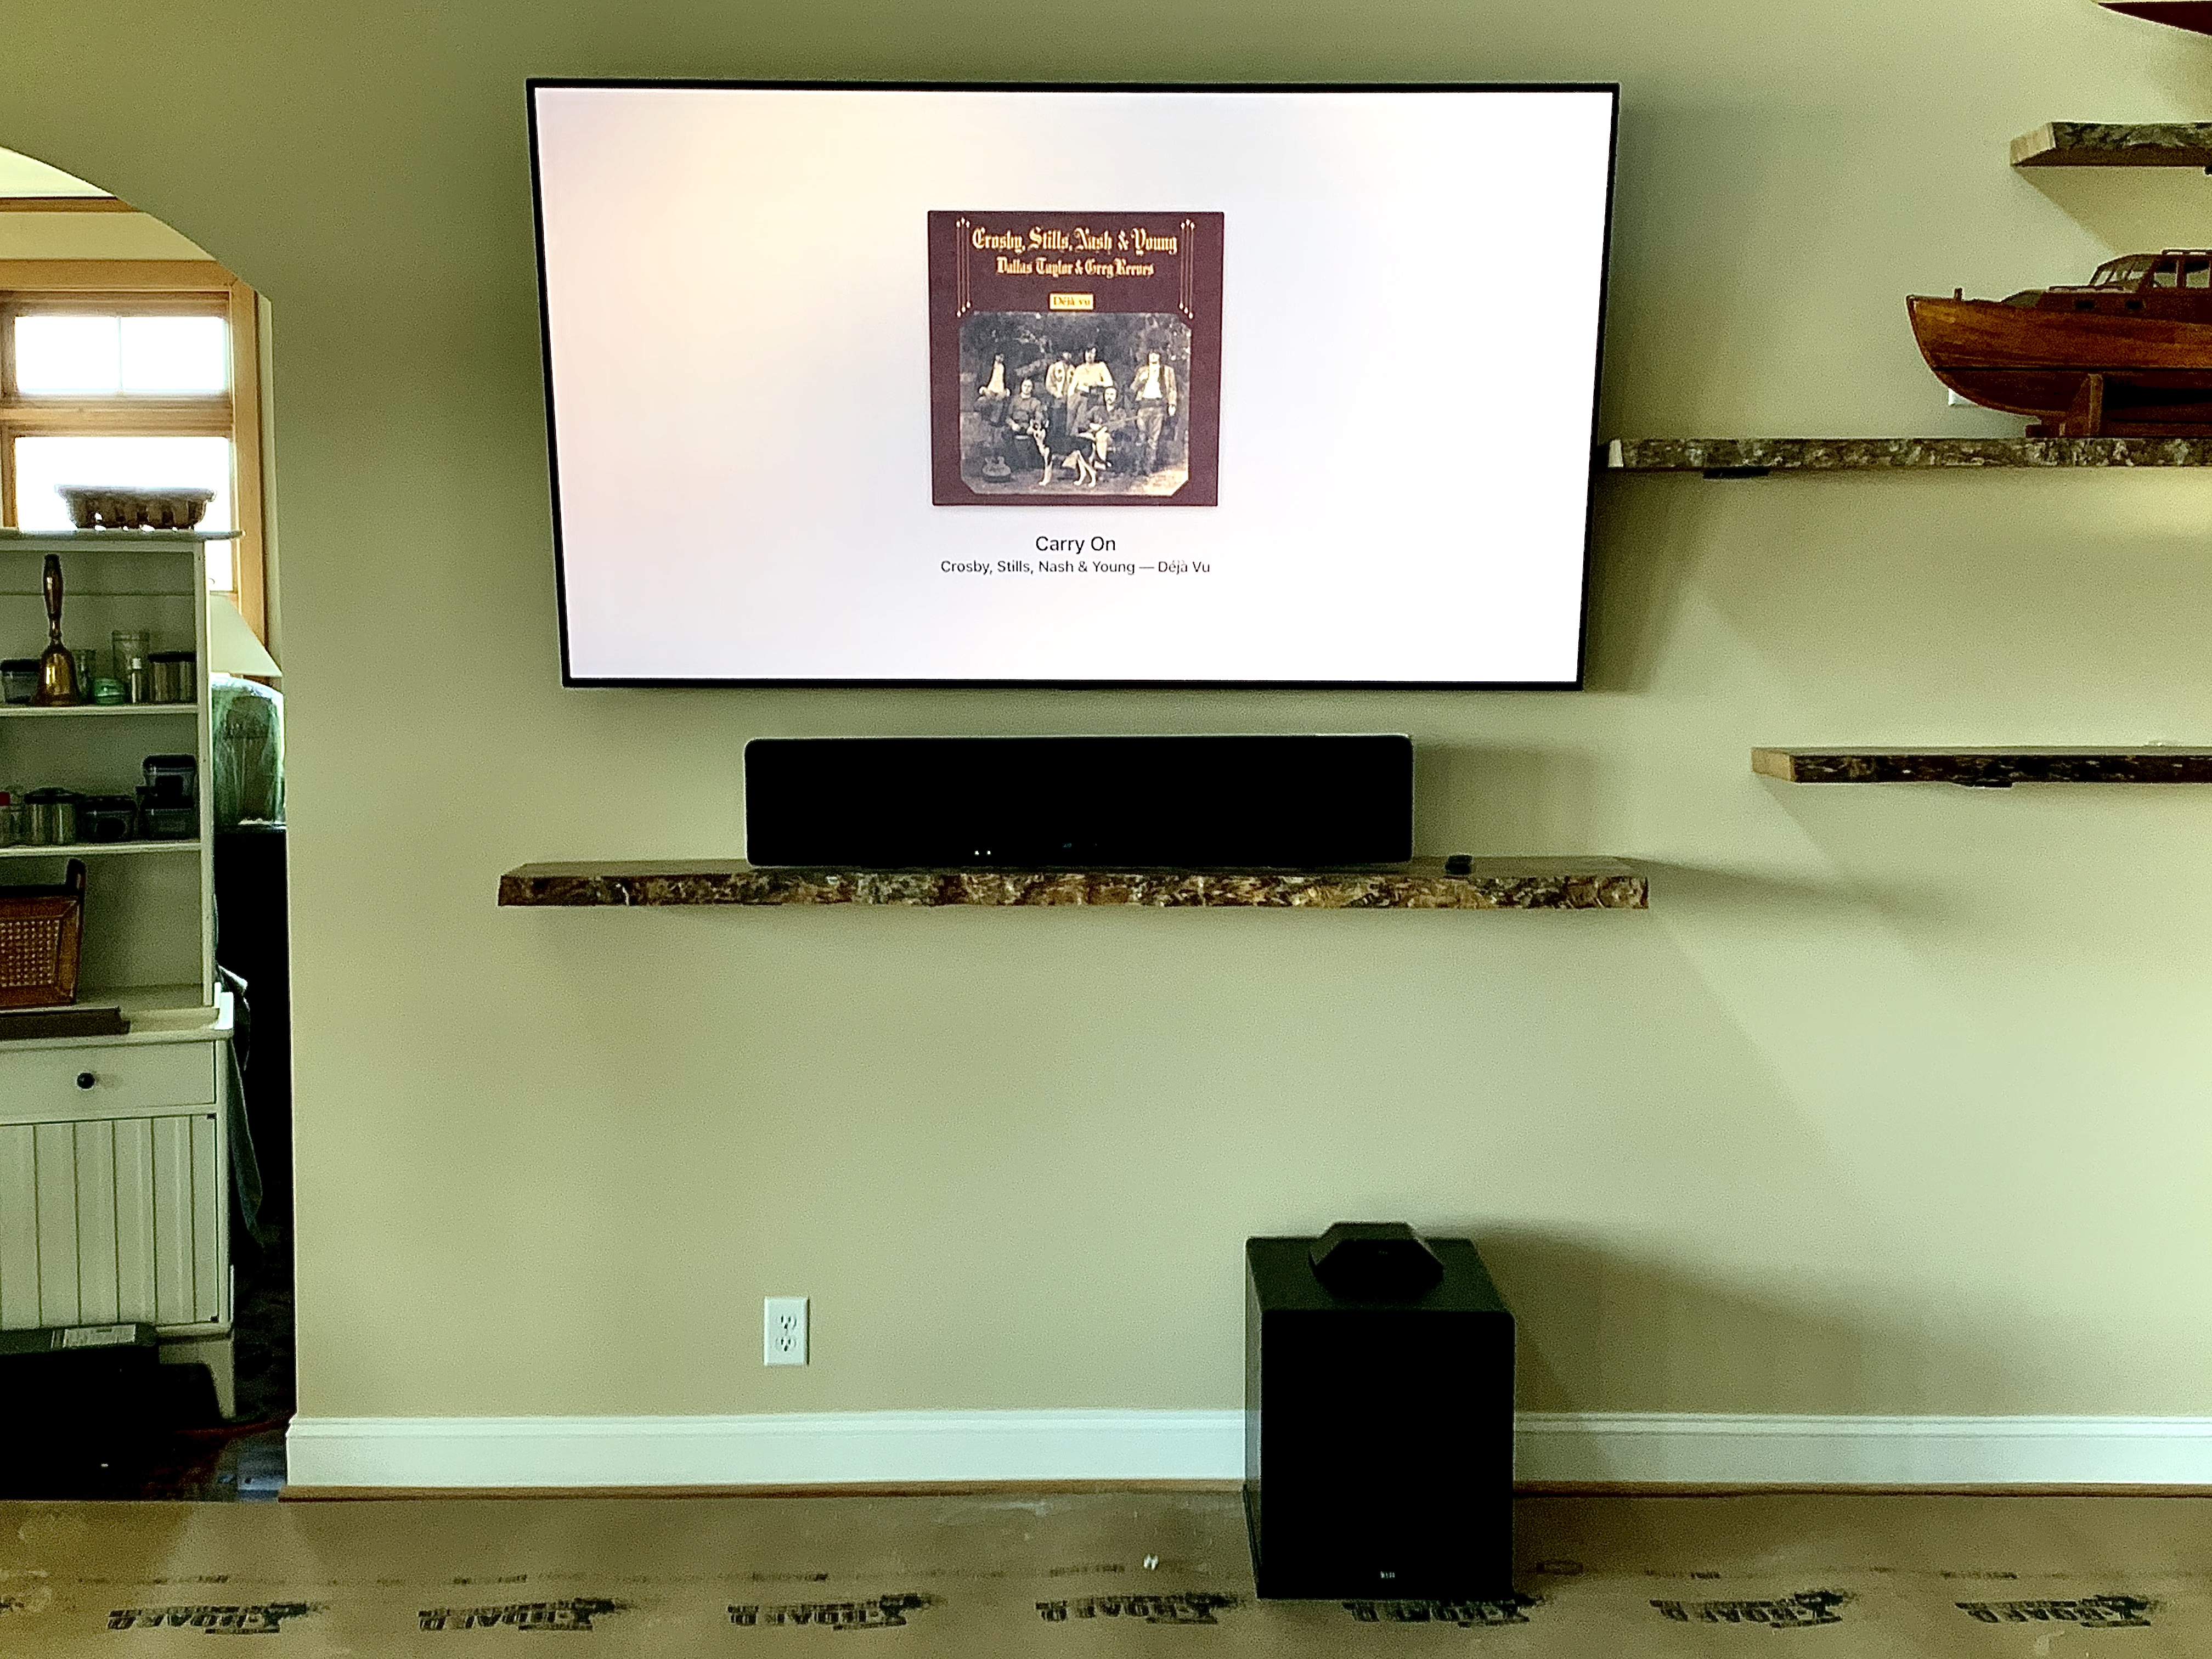 >Rob's system included a 77 inch LG OLED TV and a Yamaha YS5600 SoundBar.